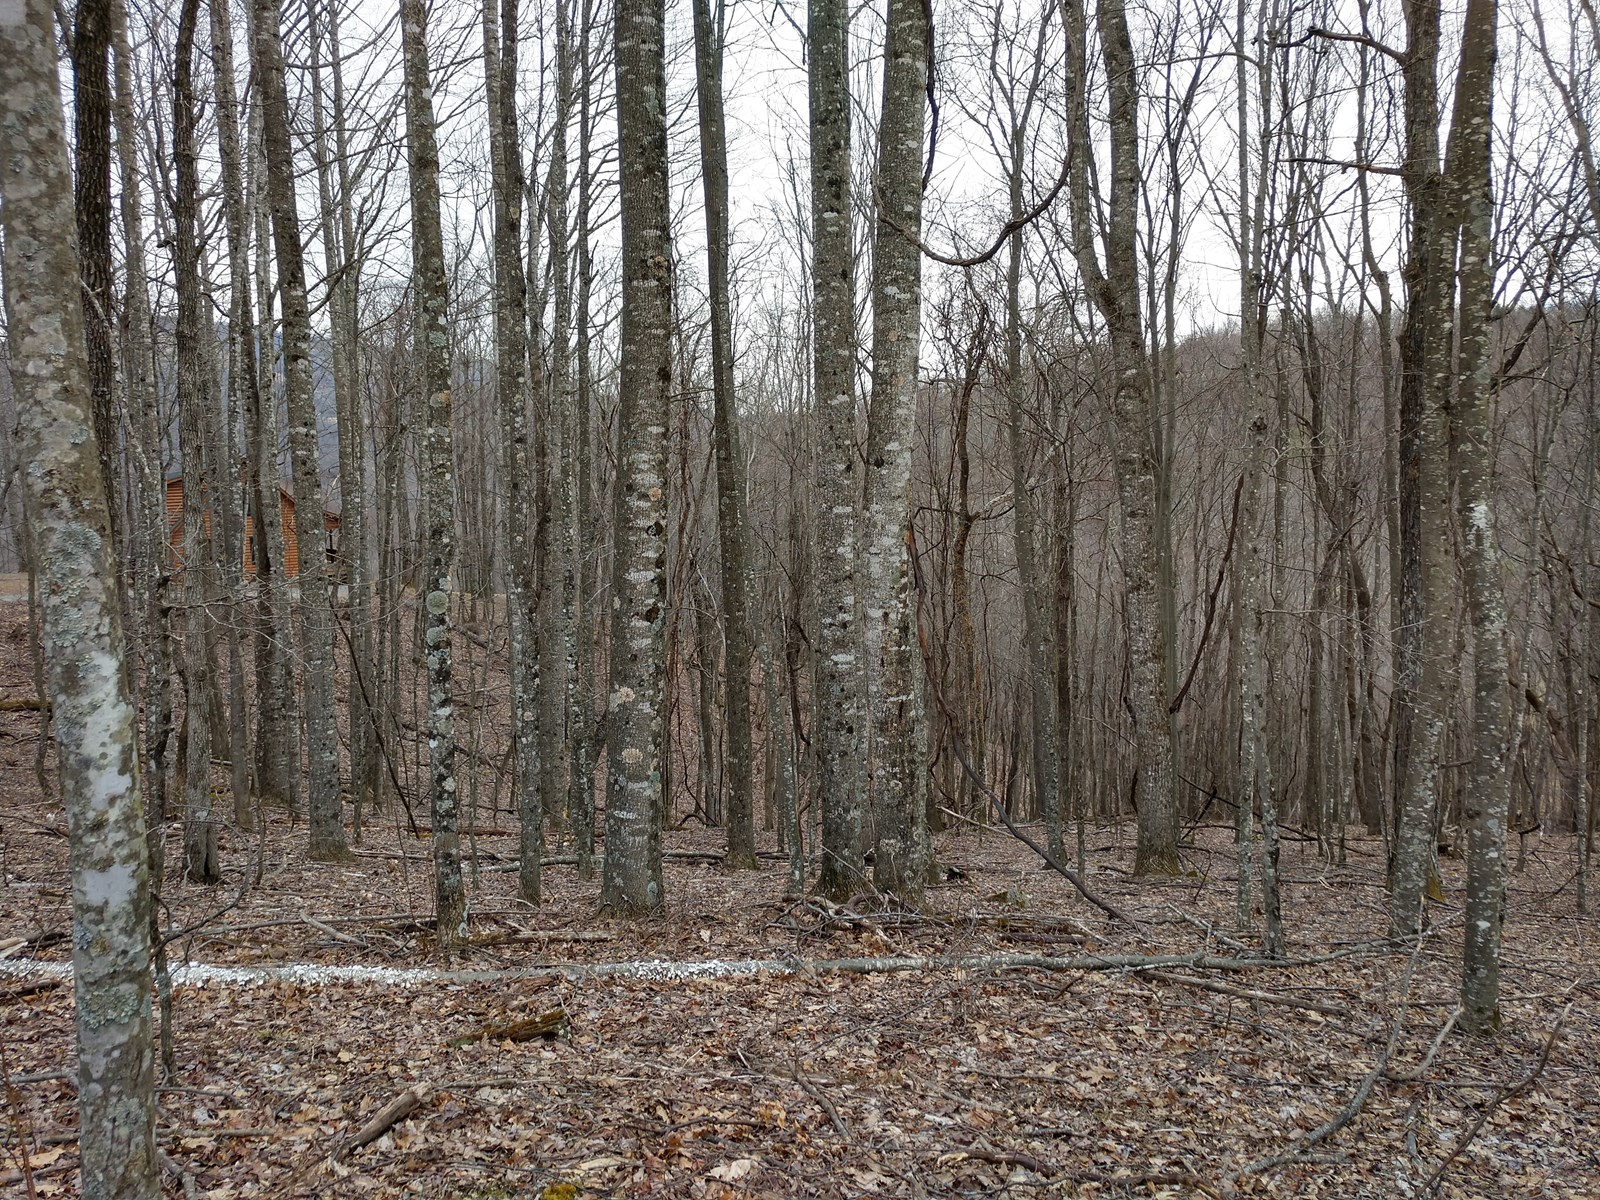 Building Lot in the Blue Ridge Mountains - Build your dream